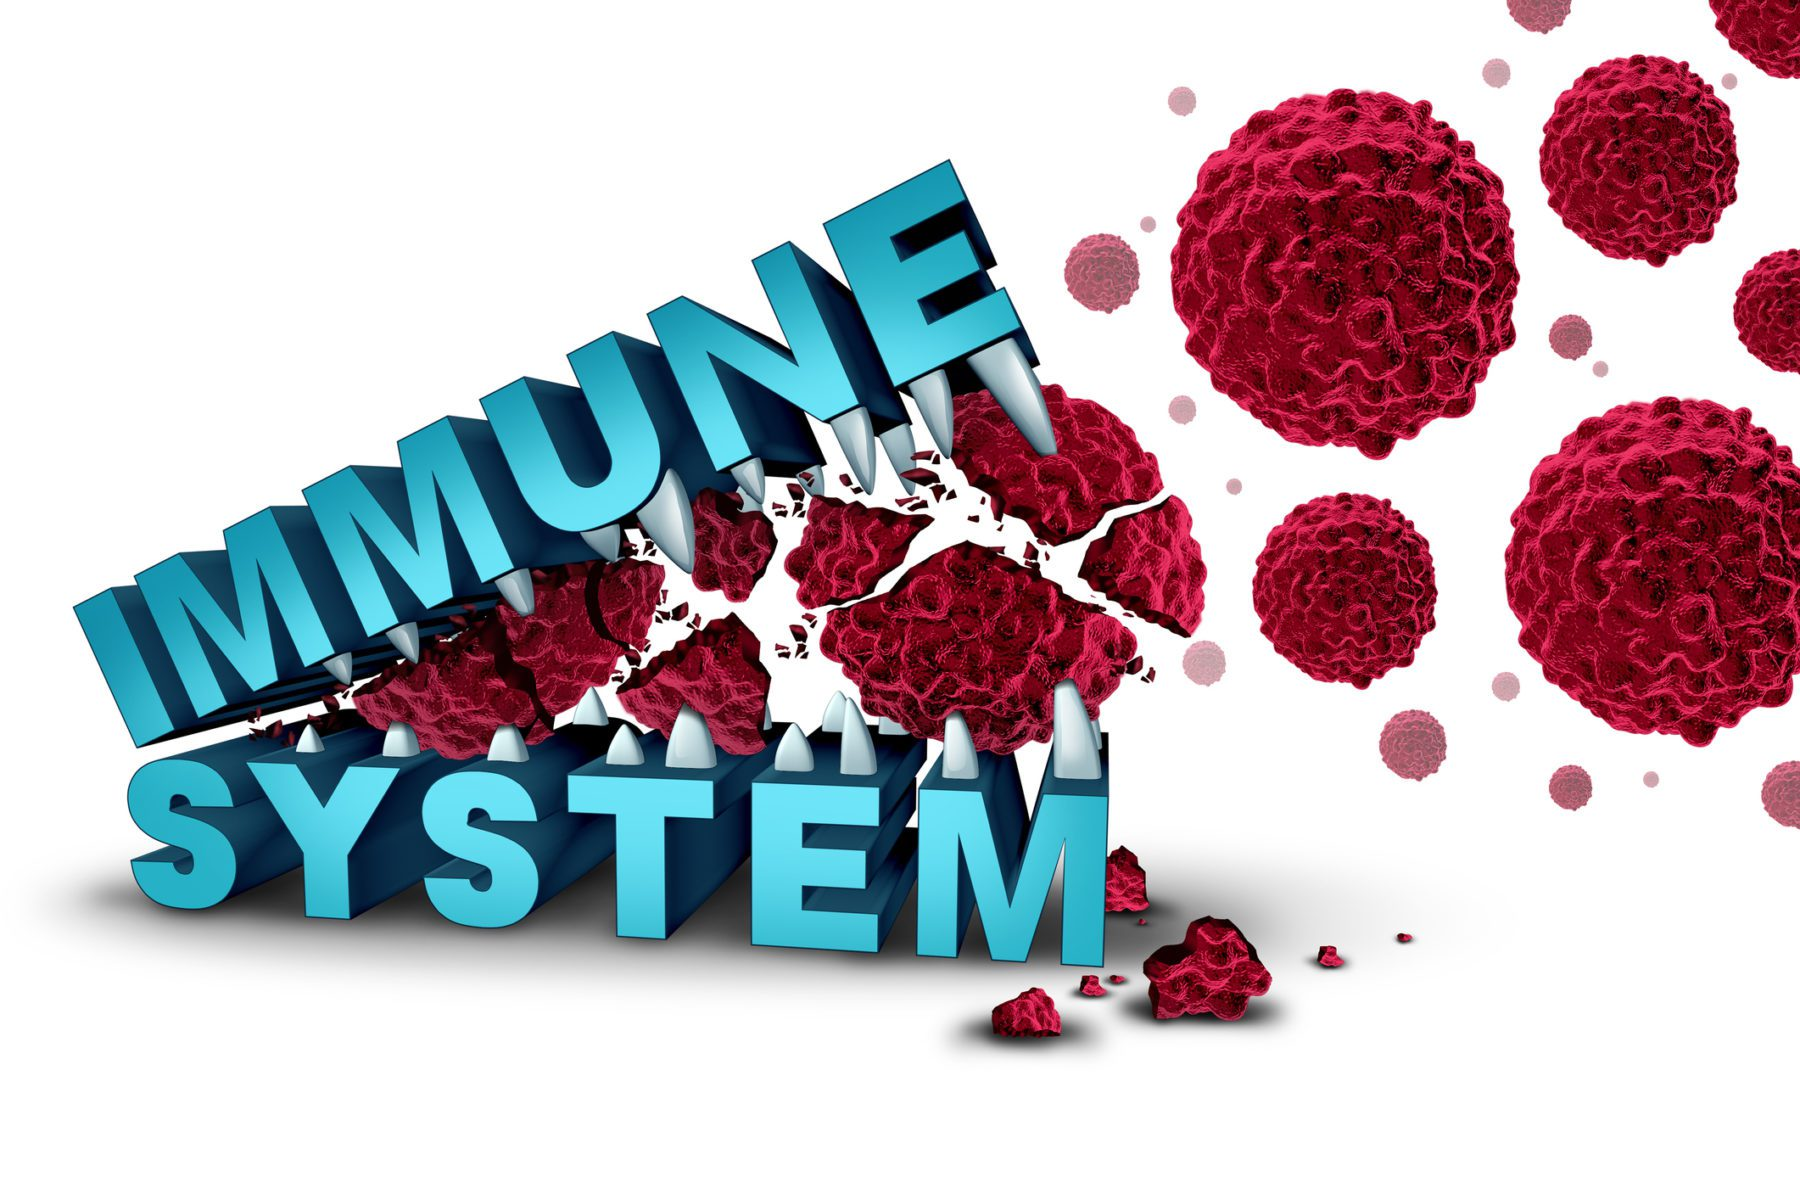 Immune system concept and immunology or immunotherapy dna based treatment with text eating and destroying malignant cancer cells as a medical and medicine cure as a 3D illustration.